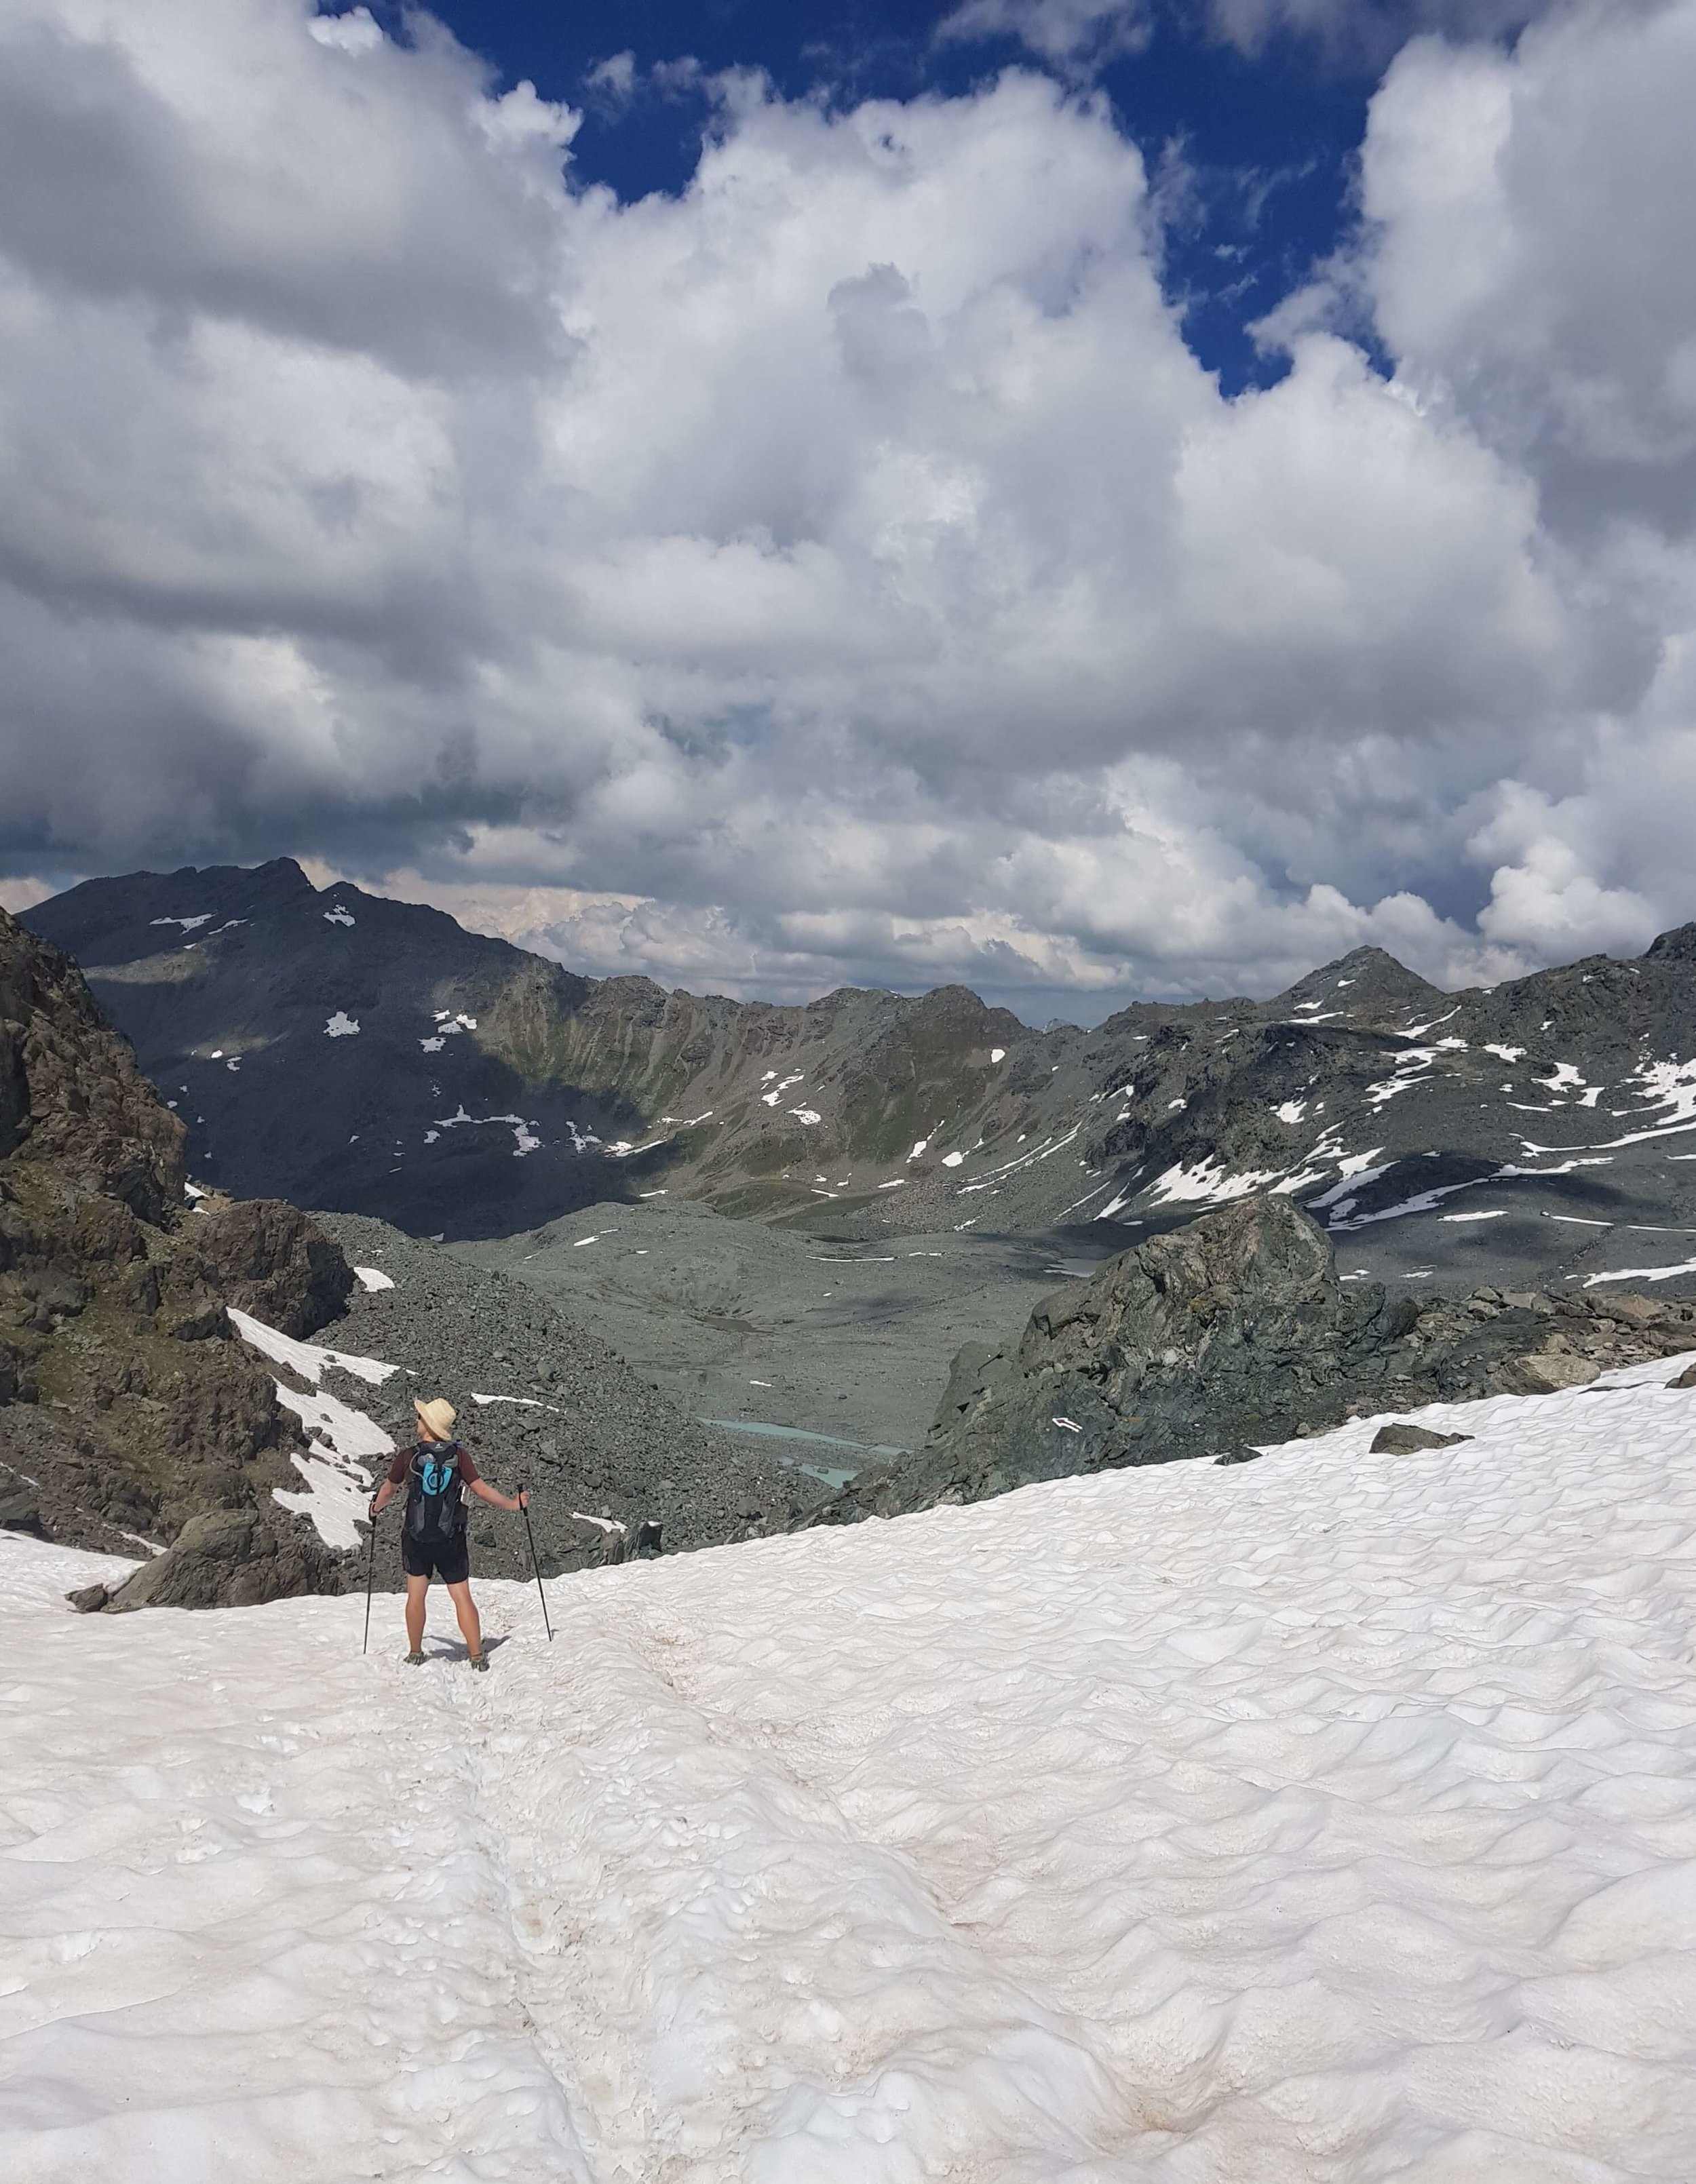 Haute Route Hike: More snow than expected during our Verbier to Refuge La Balma section